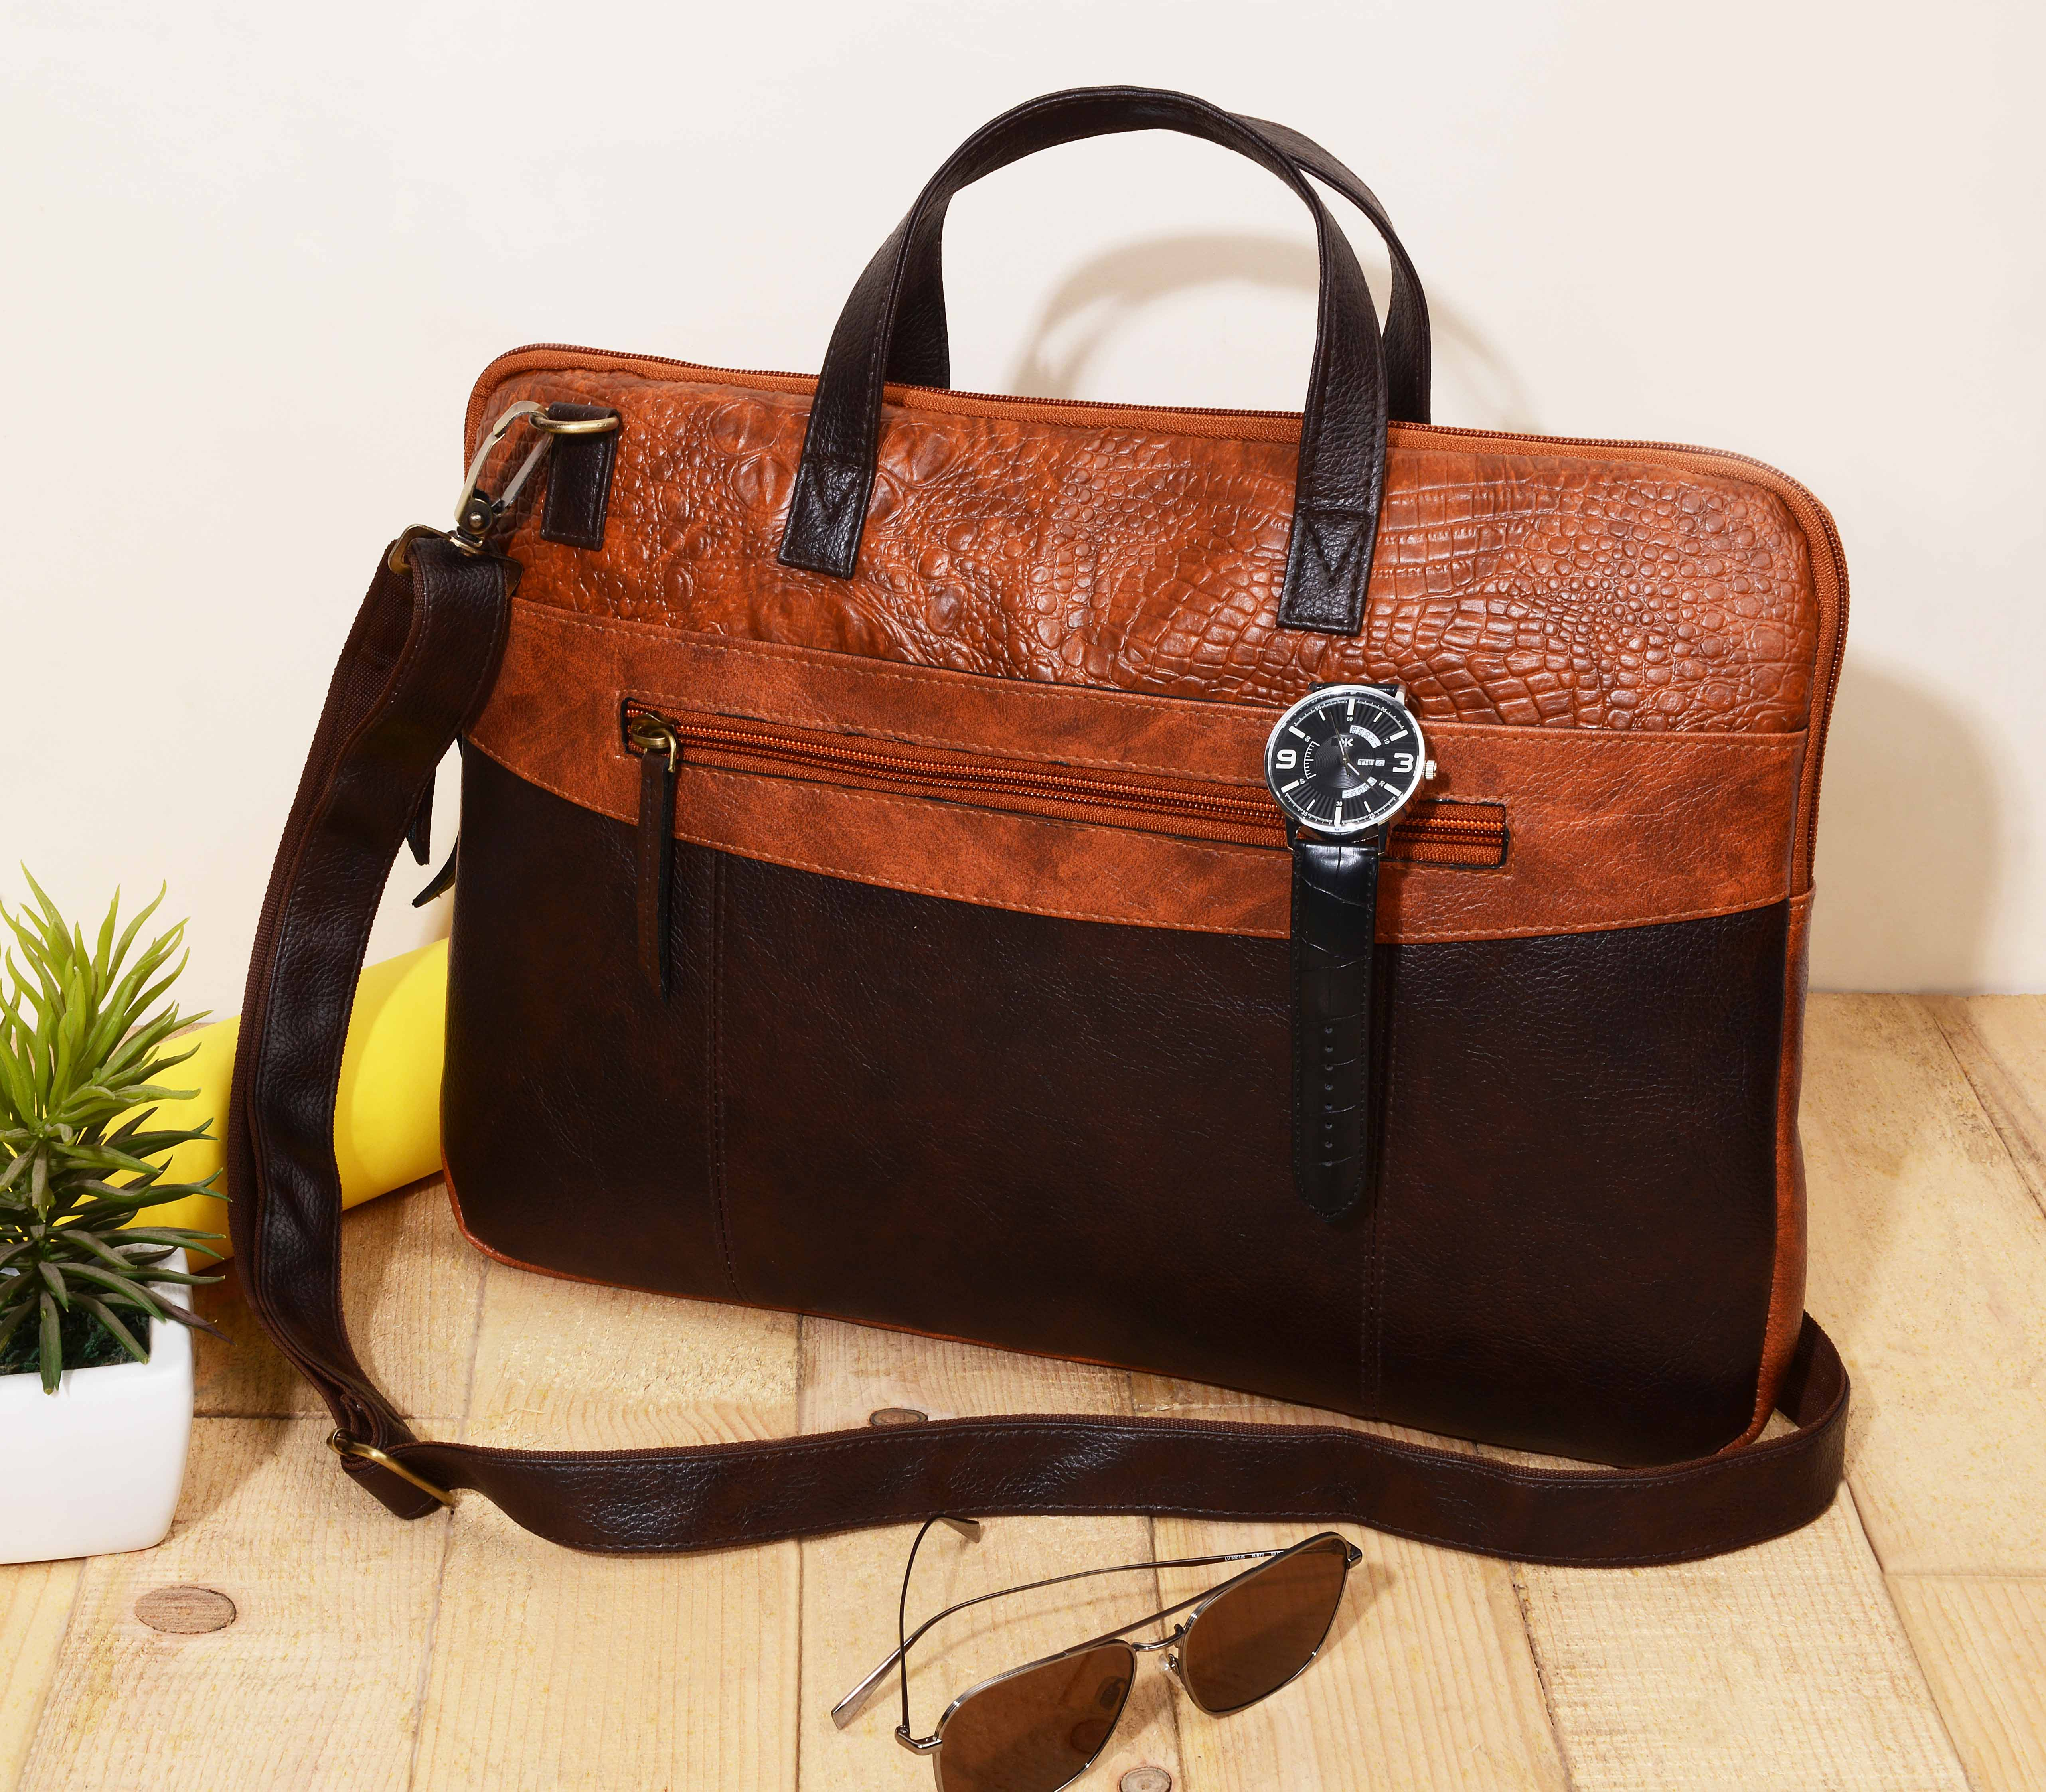 Vivinkaa | Vivinkaa Faux Leather 15.6 inch Mid Tan/Coffee Padded Laptop Messenger bag for Men & Women